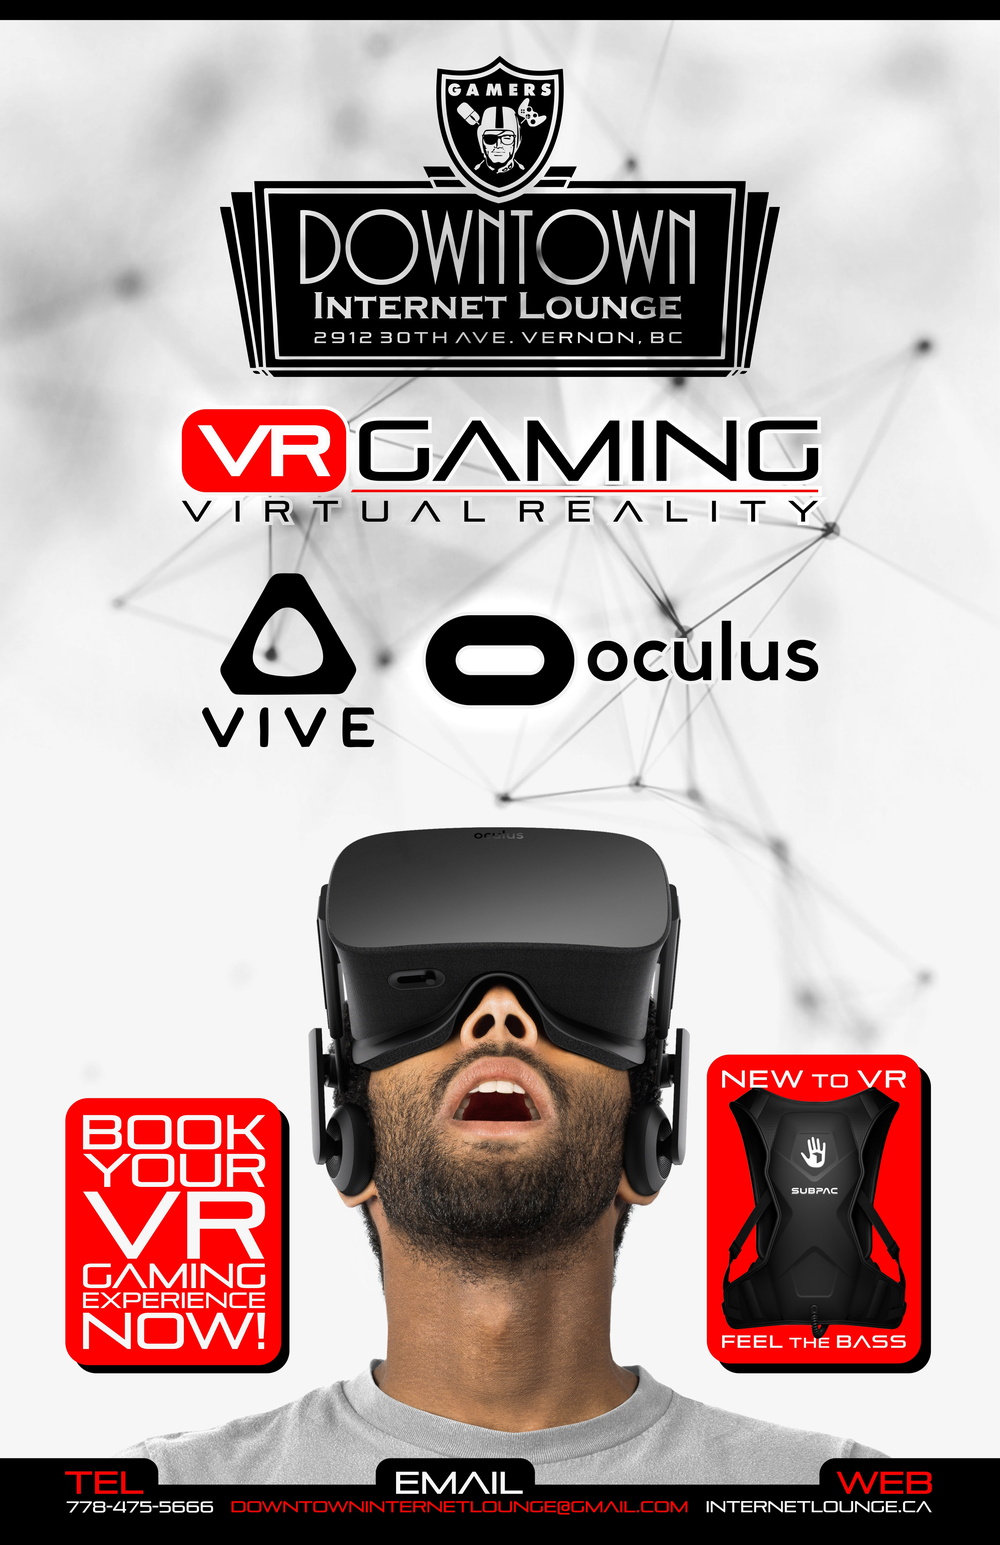 Experience Virtual Reality